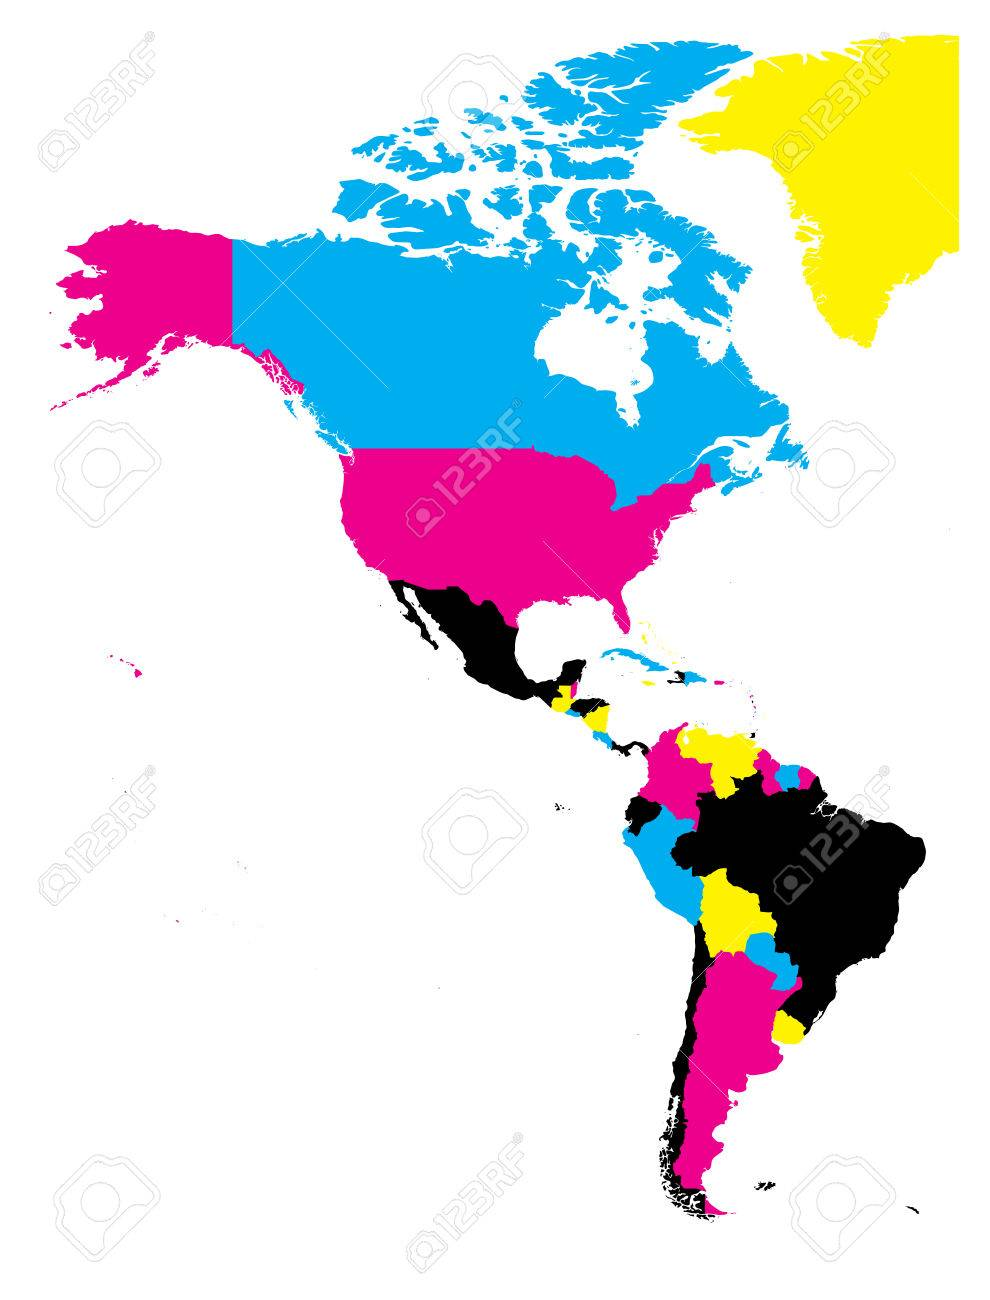 Political Map Of Americas In Cmyk Colors On White Background